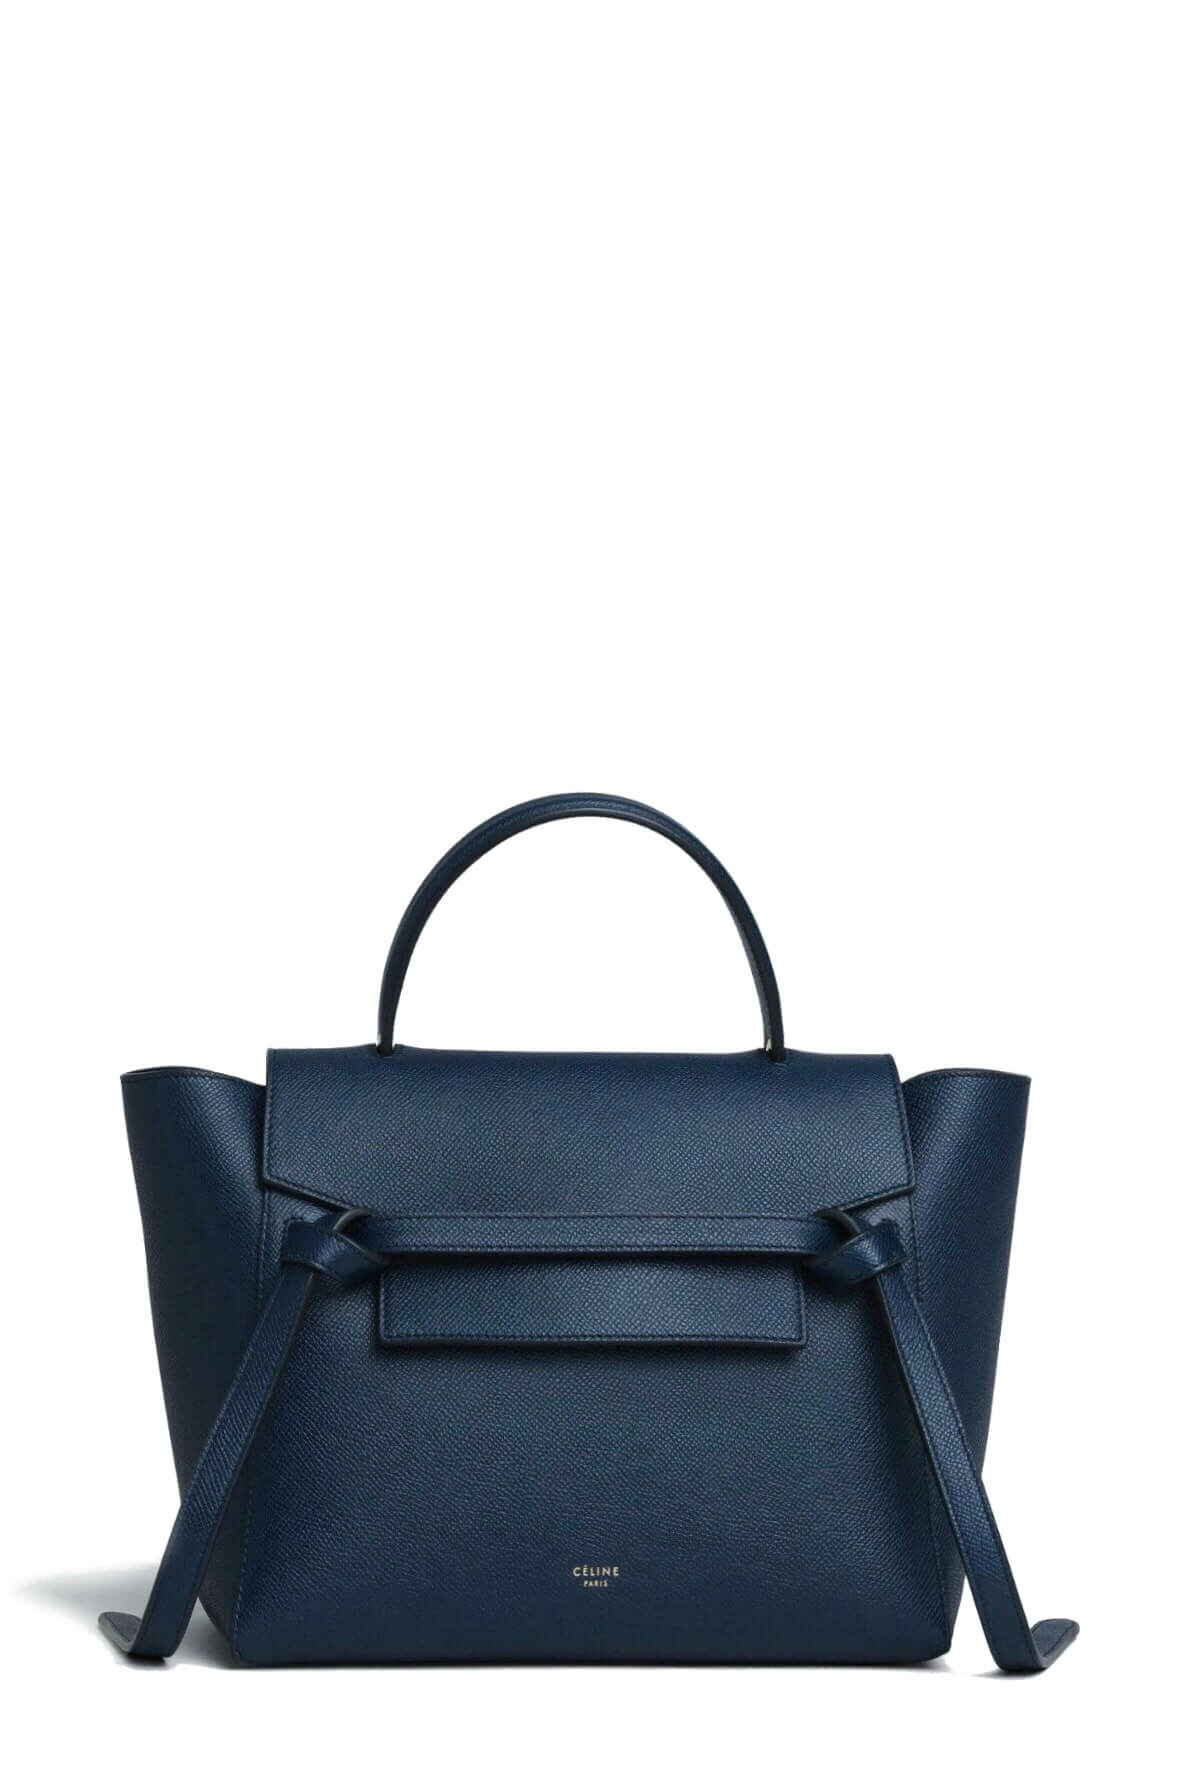 Micro Belt Bag Abyss Blue By Celine Style Theory Bags